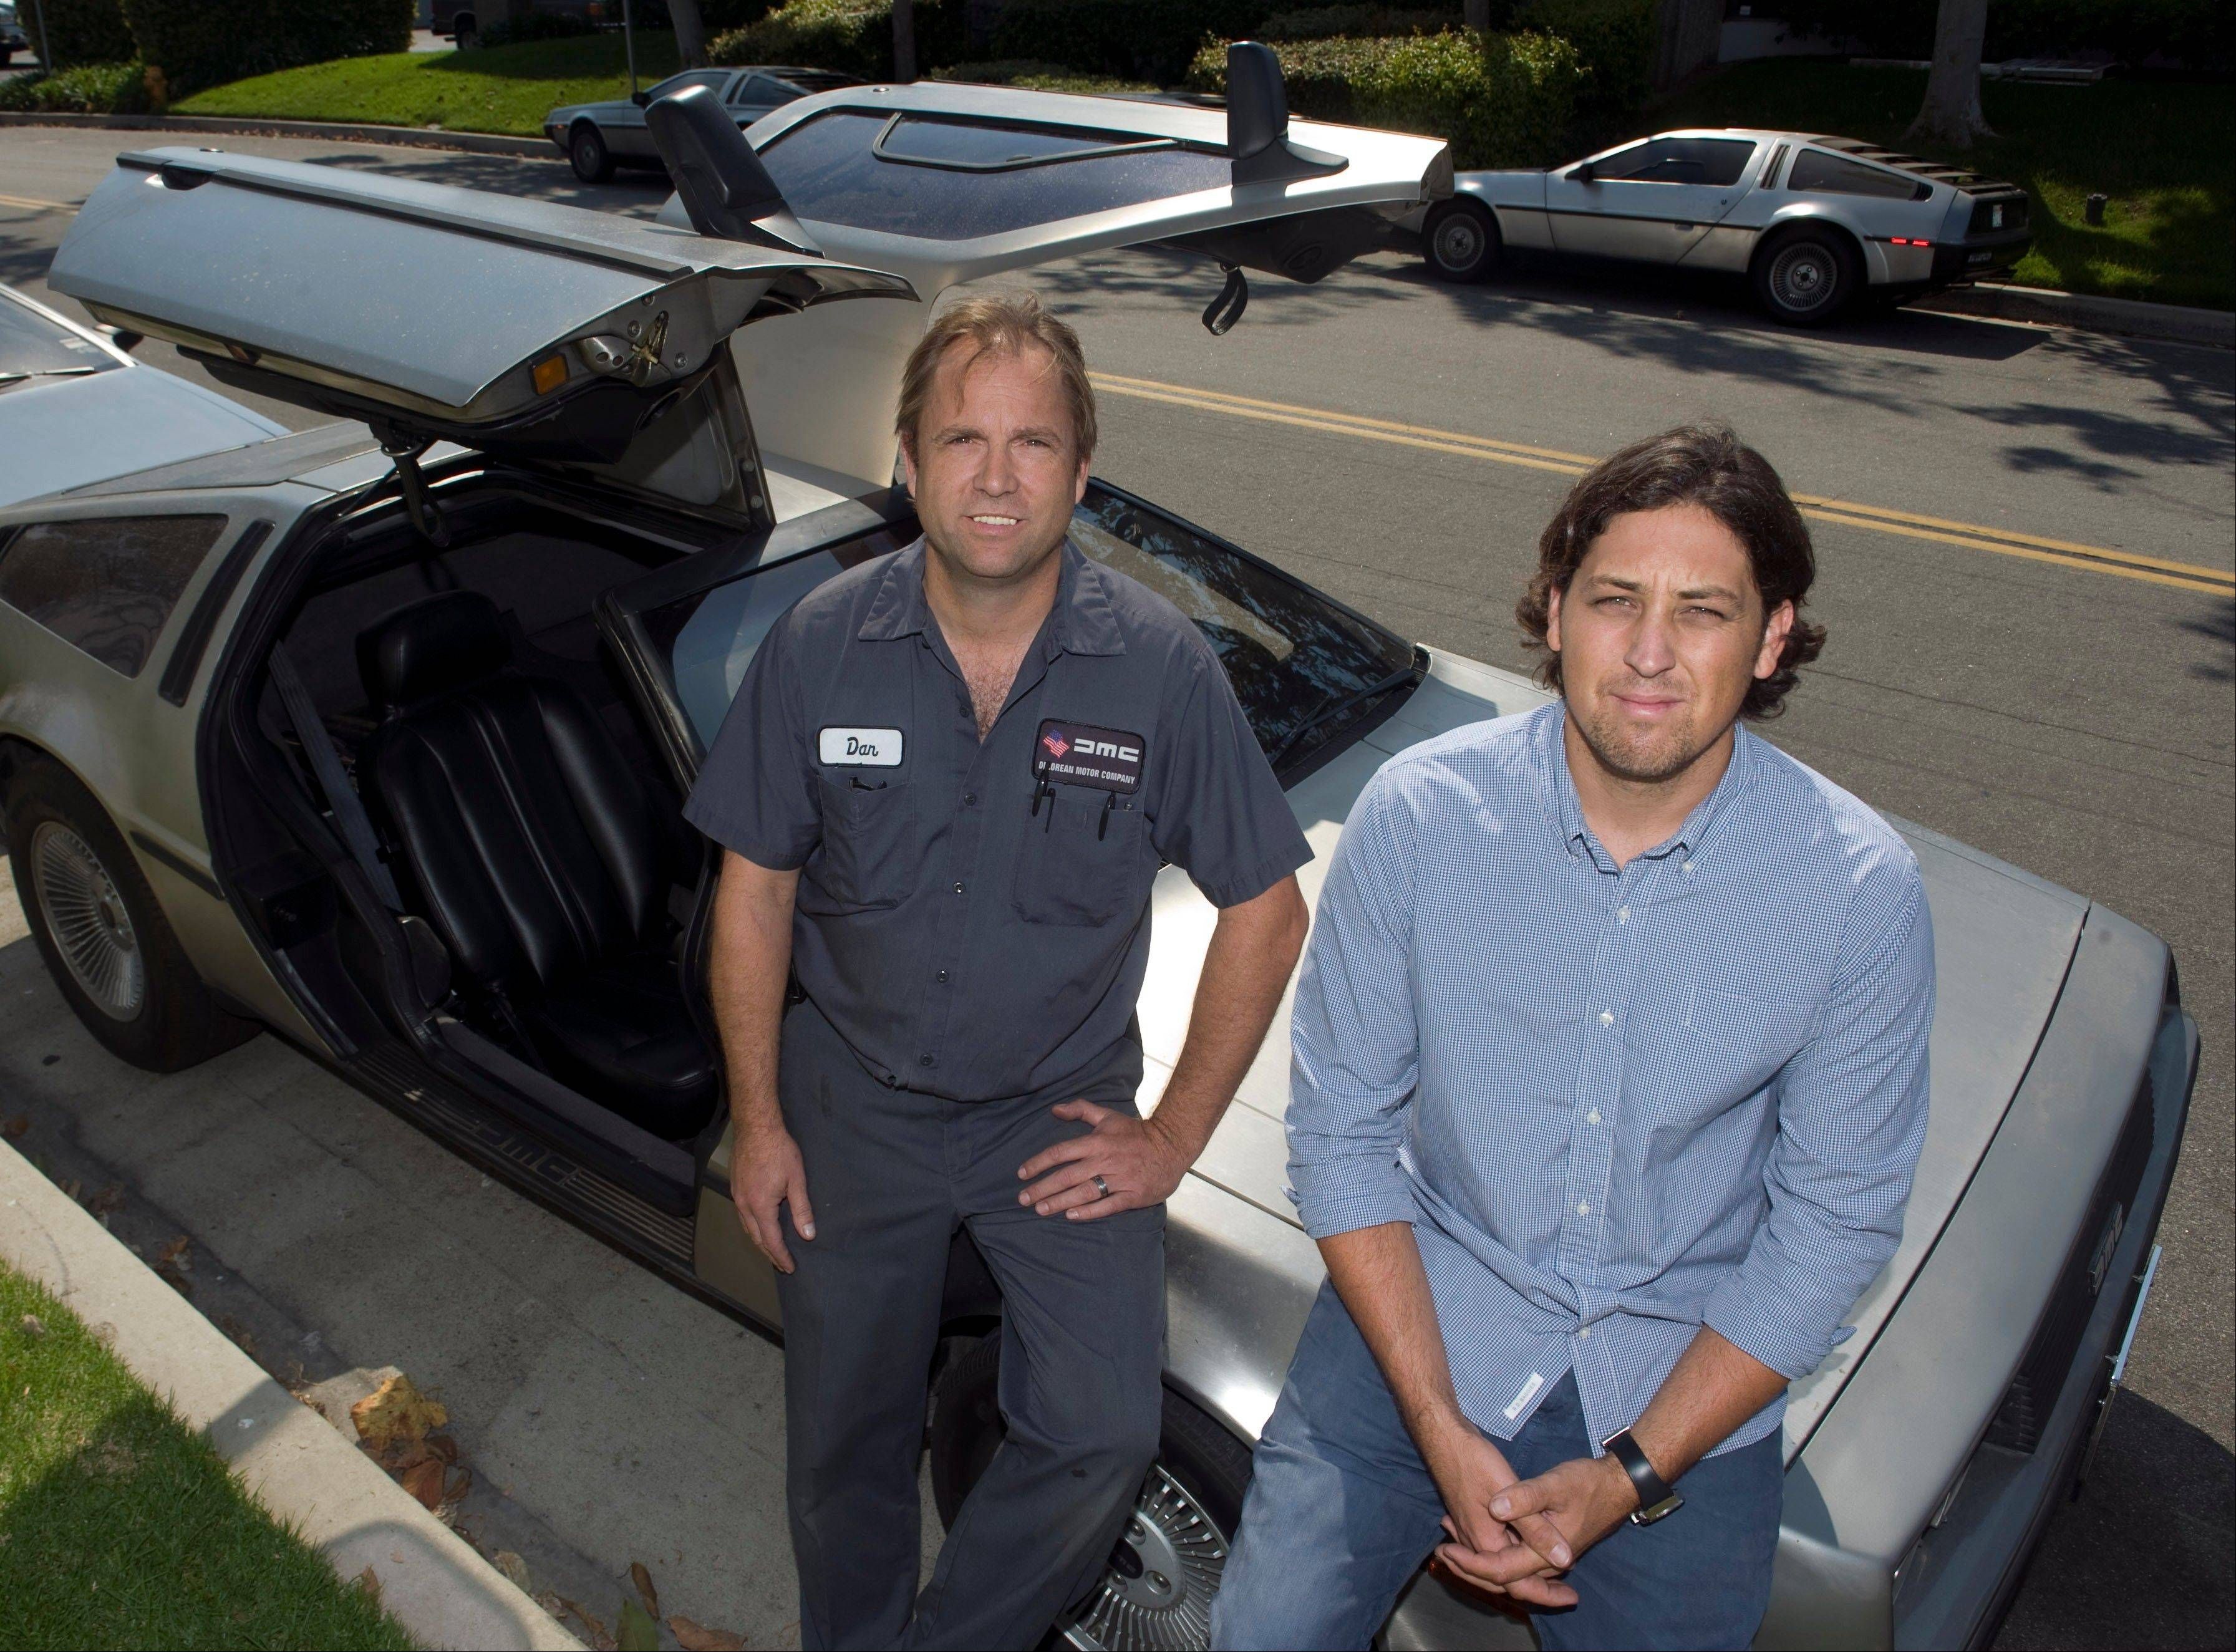 Danny Botkin, left, service manager, and Cameron Wynne, general manager, of the DeLorean Motor Company.